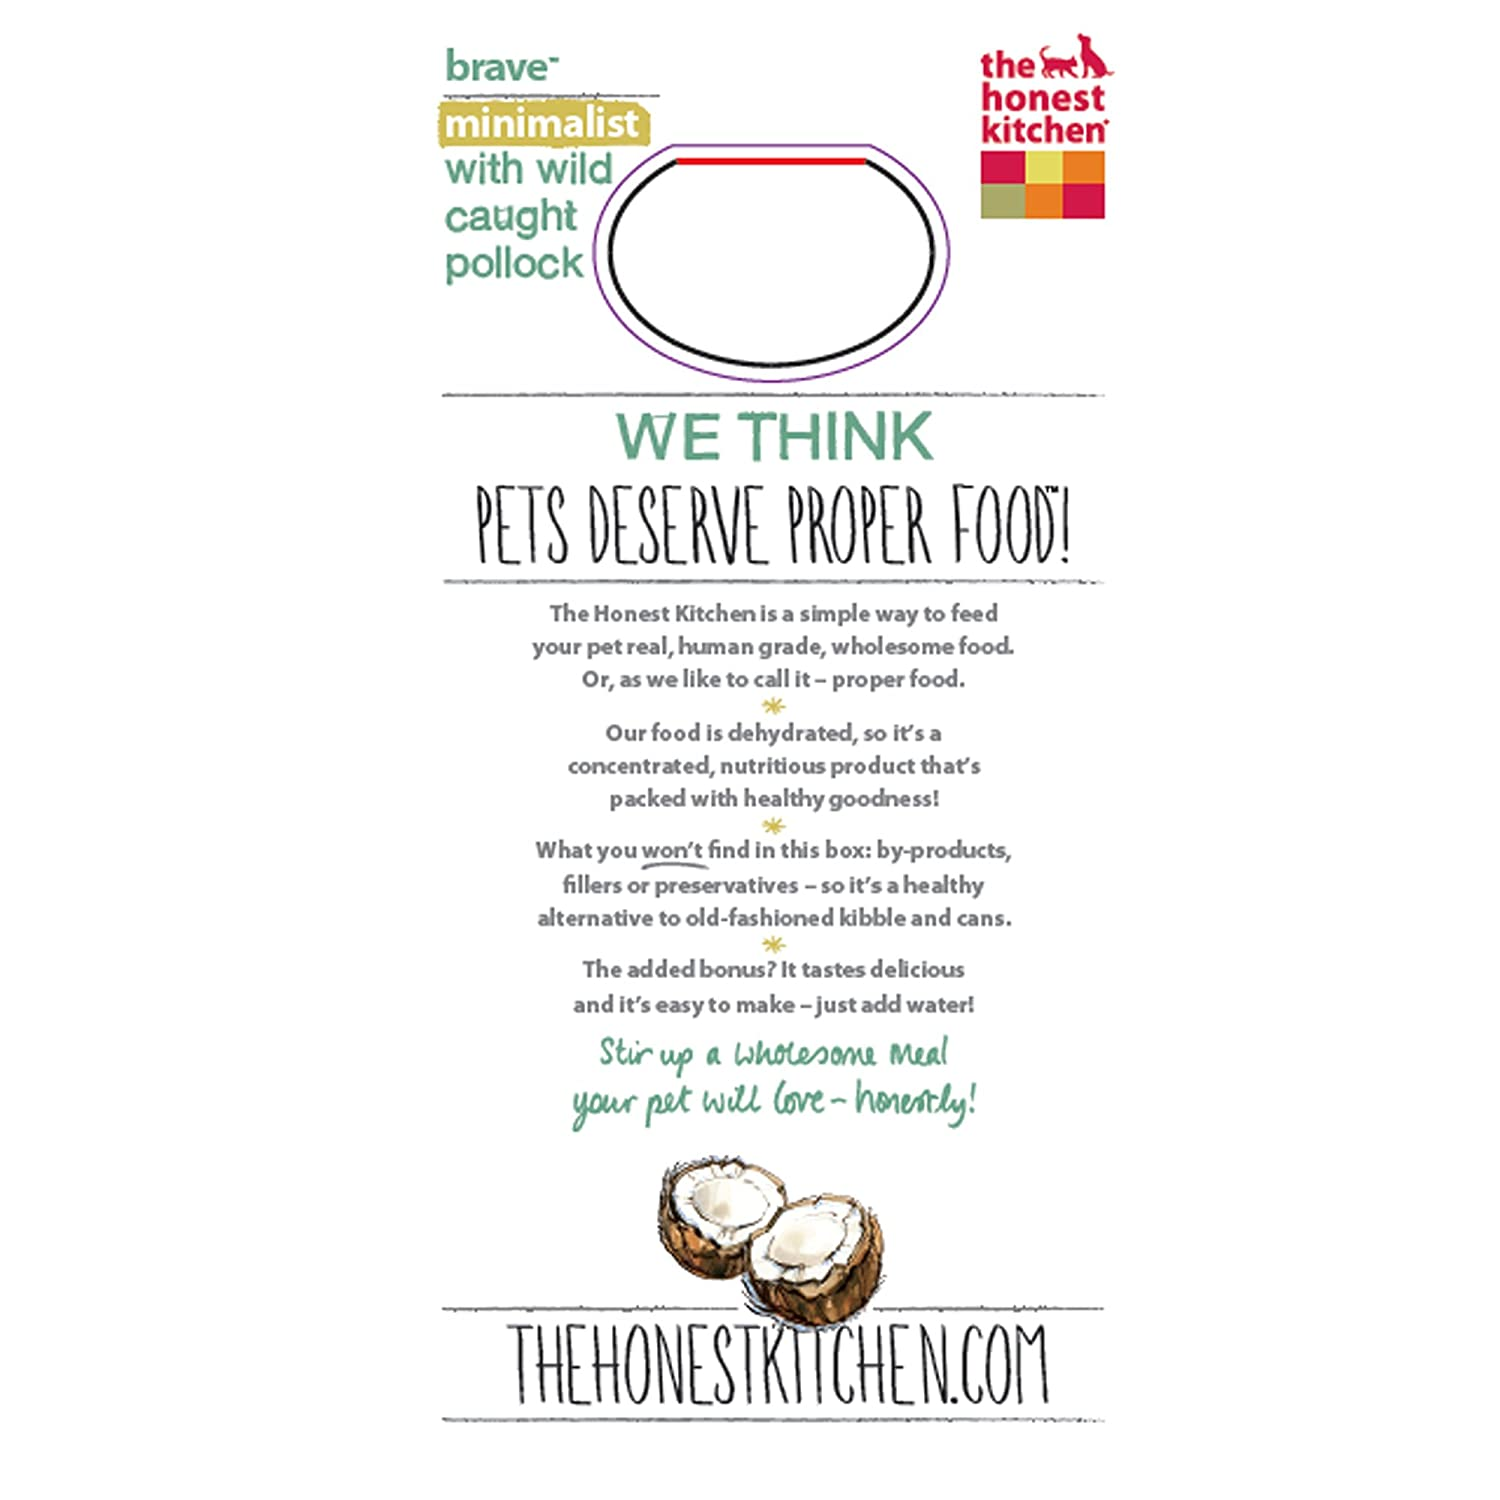 the honest kitchen brave grain free dog food dehydrated